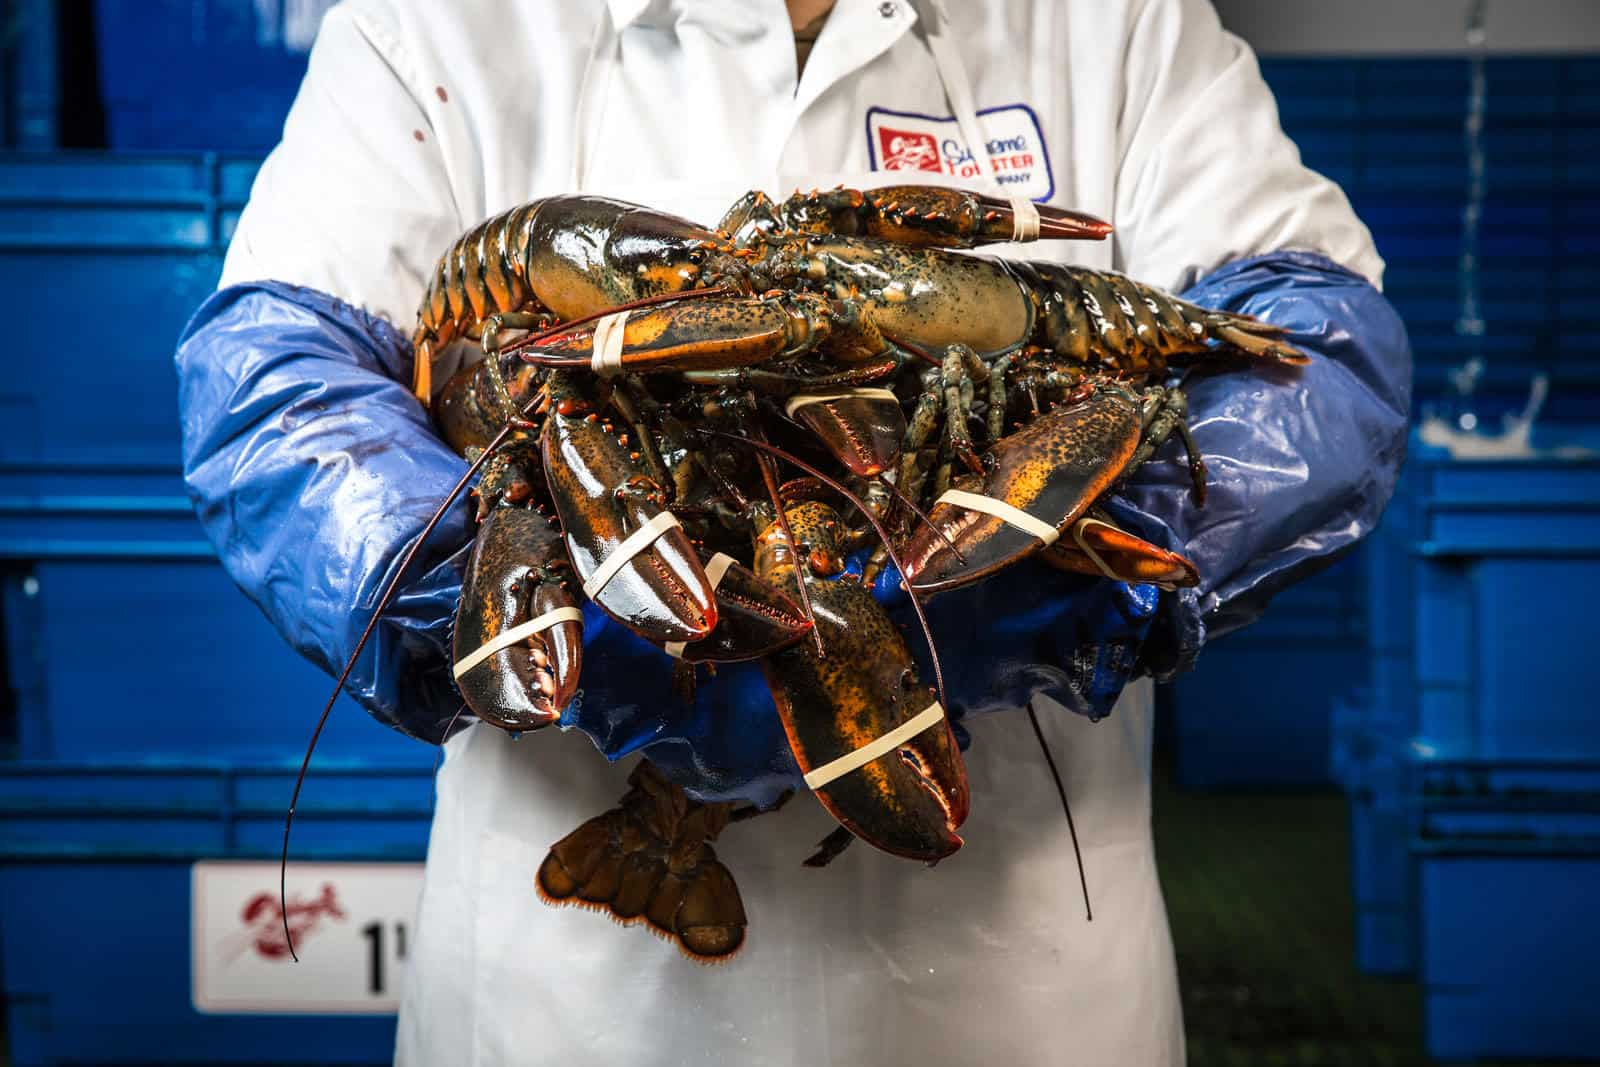 Supreme Lobster - Hands Full of Lobster